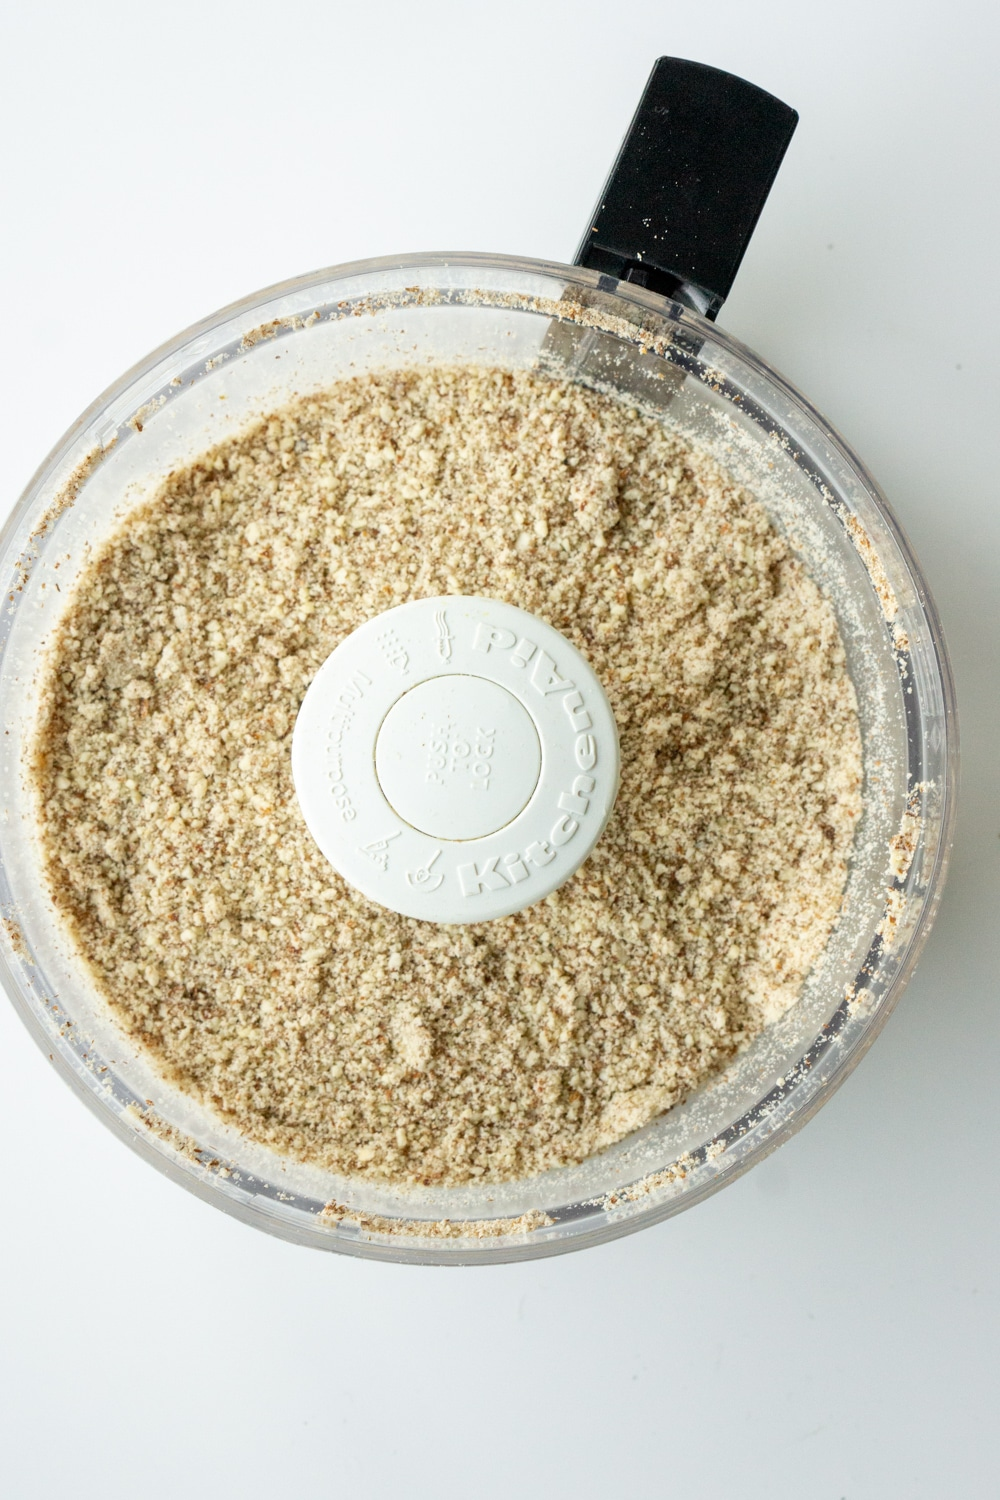 Ground almonds in a food processor